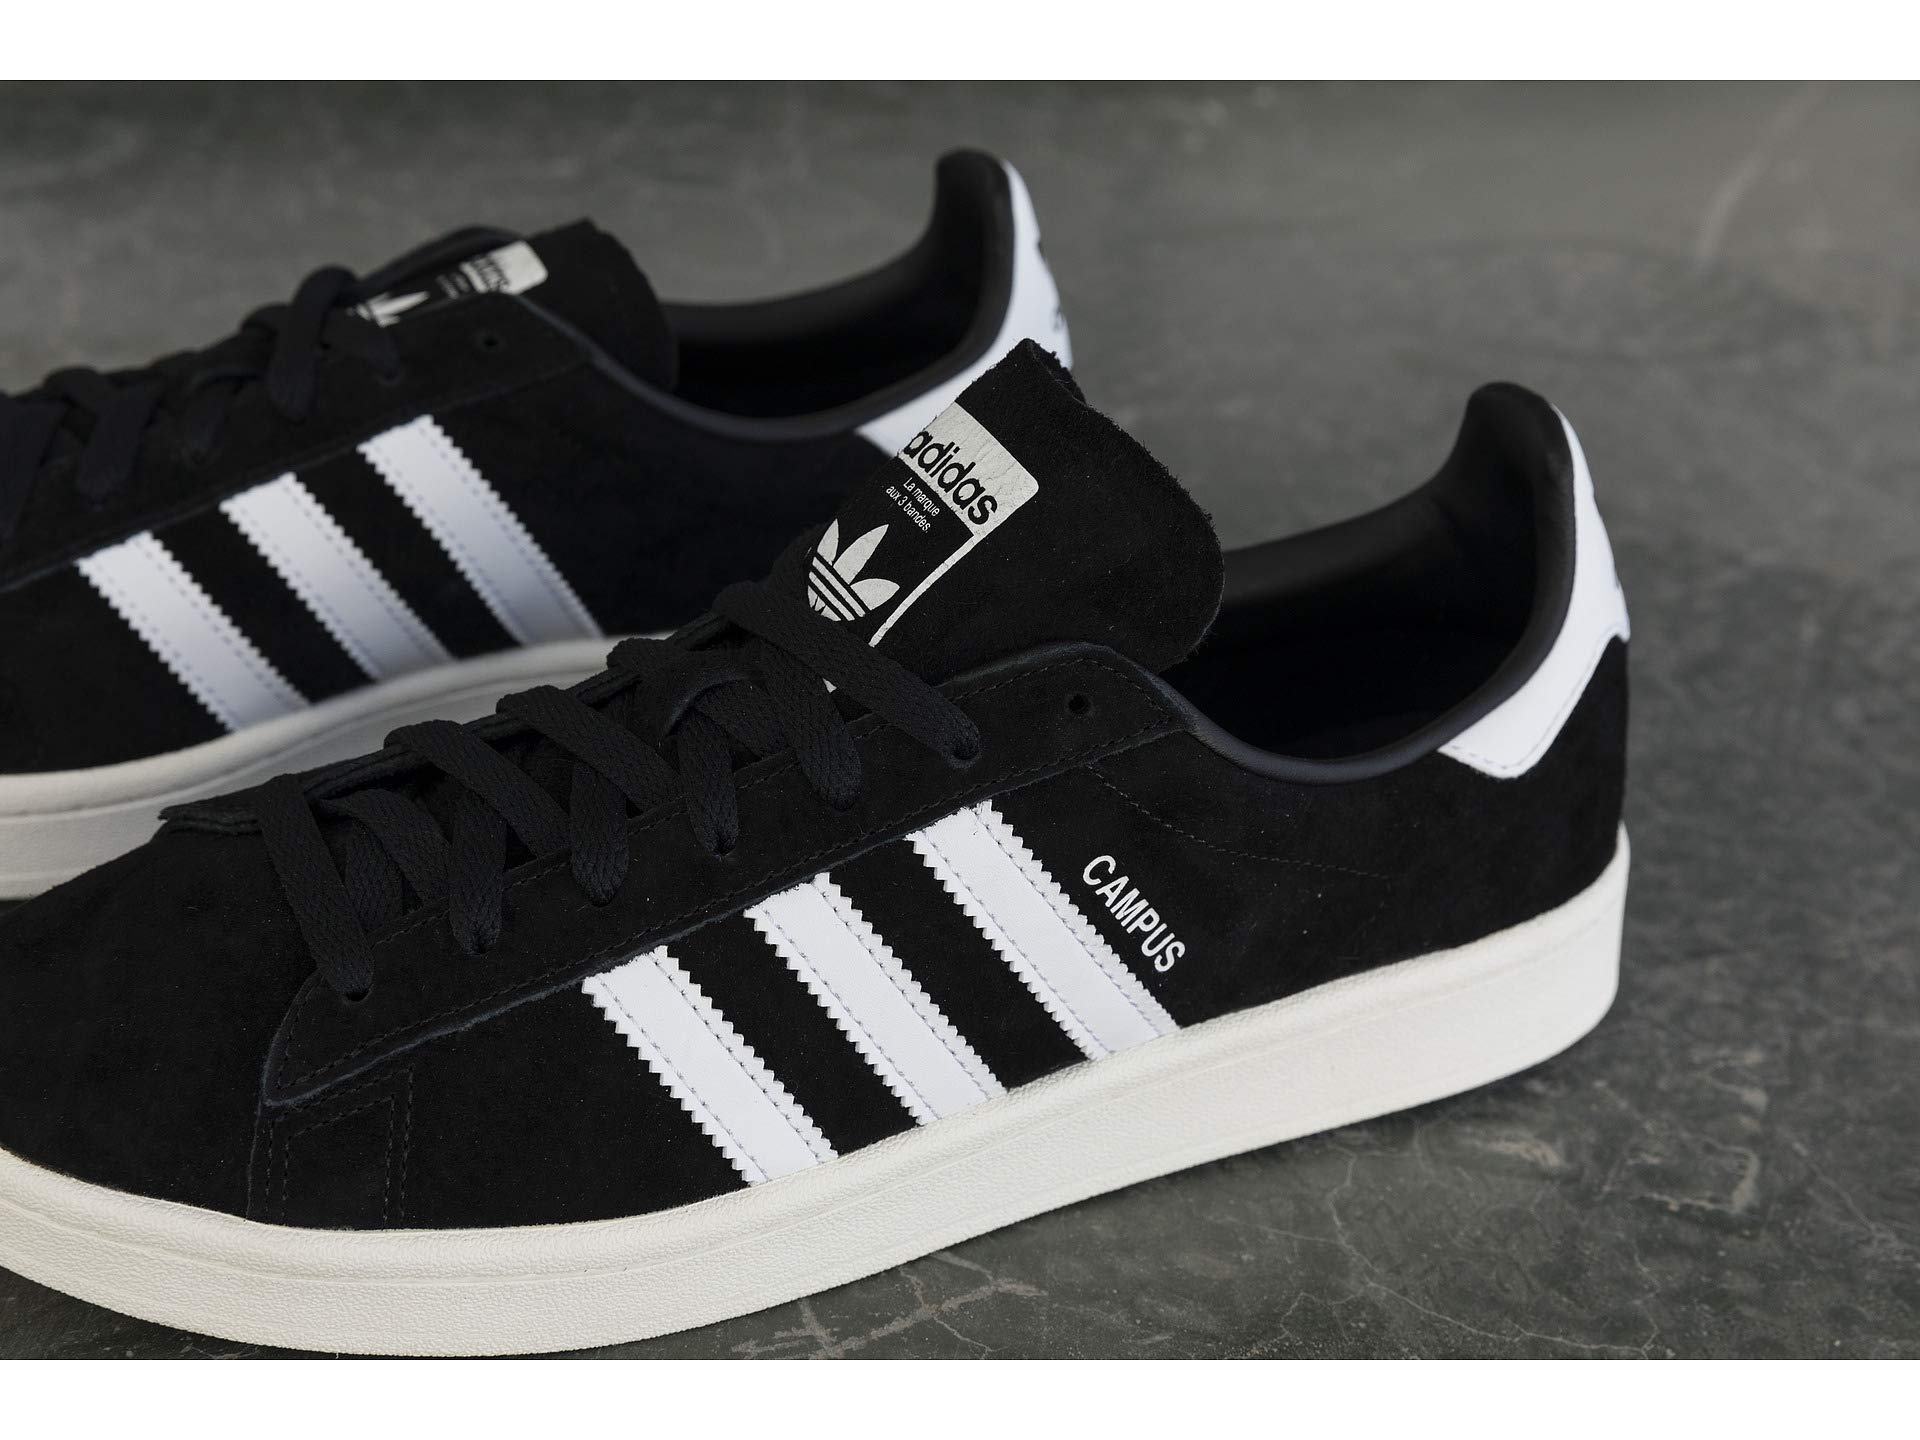 689f5195d48e95 adidas Campus Originals Shoes for Men Style Bz0084 US Size 12 for ...